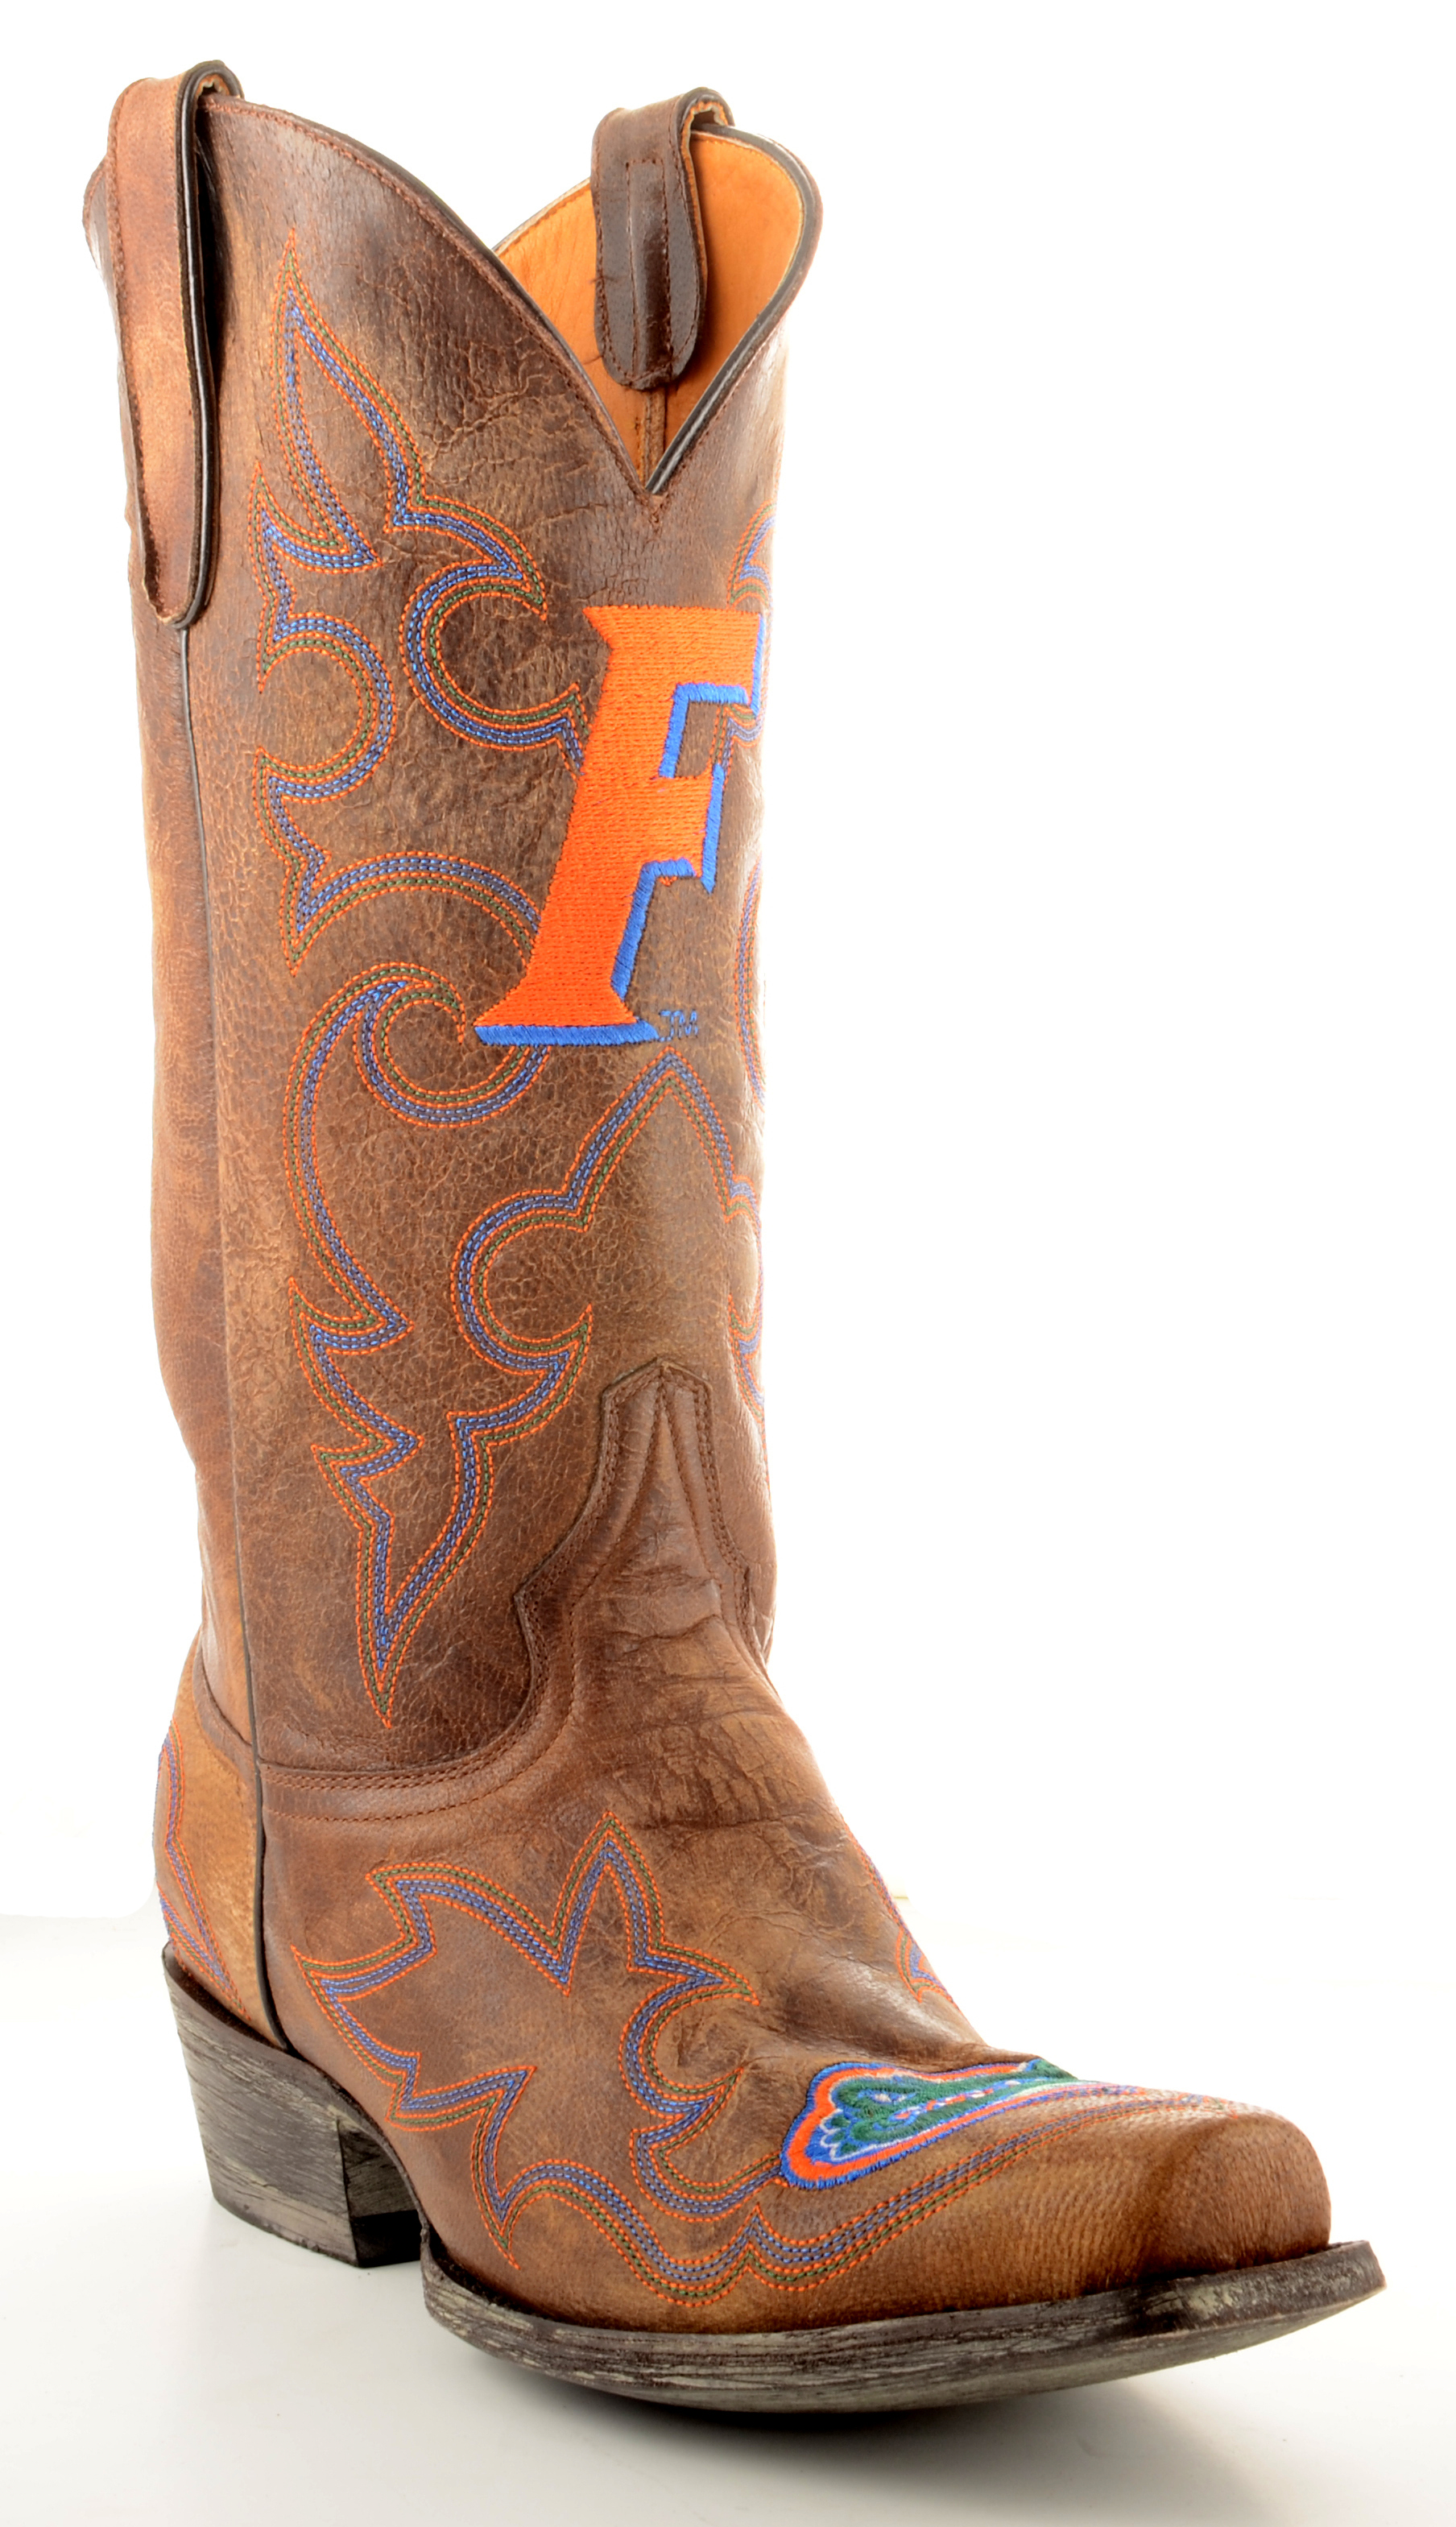 "Men's Tan Florida Gators 13"" Original Embroidered Boots by GameDay Boots"